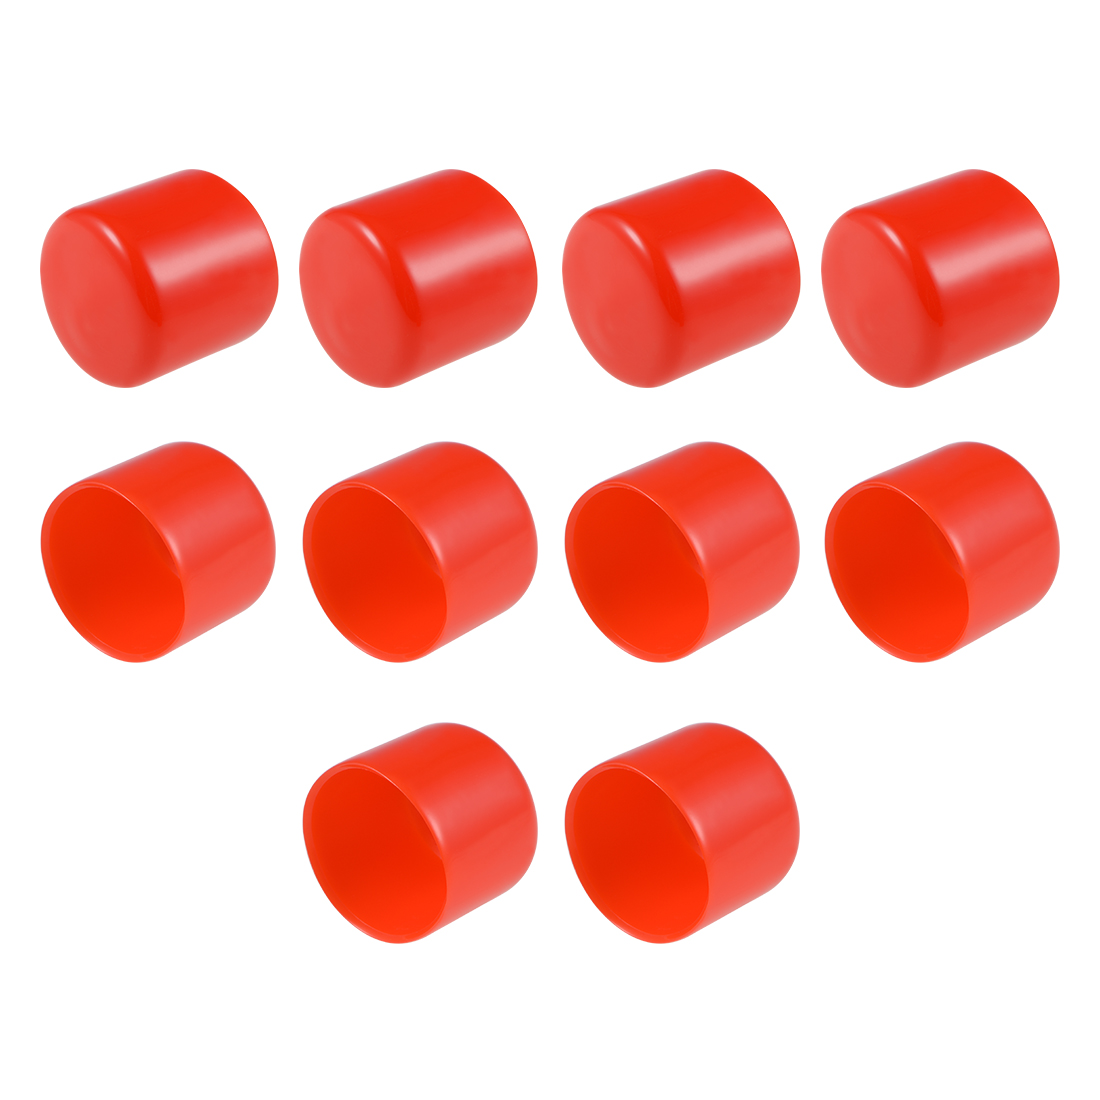 Screw Thread Protector, 33mm ID Round End Cap Cover Red Tube Caps 10pcs